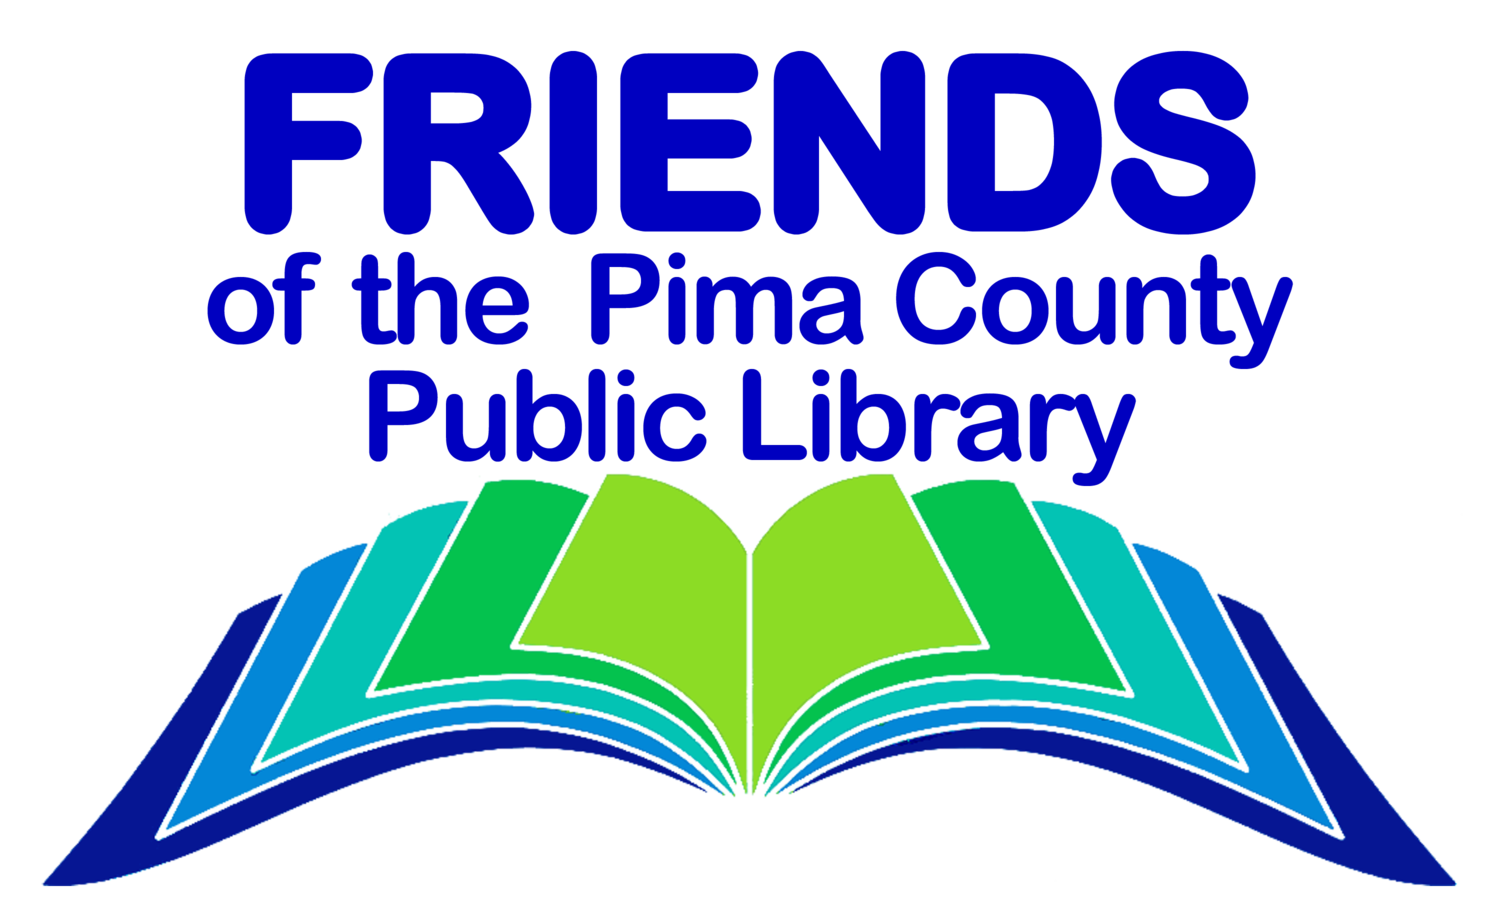 Textbook clipart librarian. Join friends of the